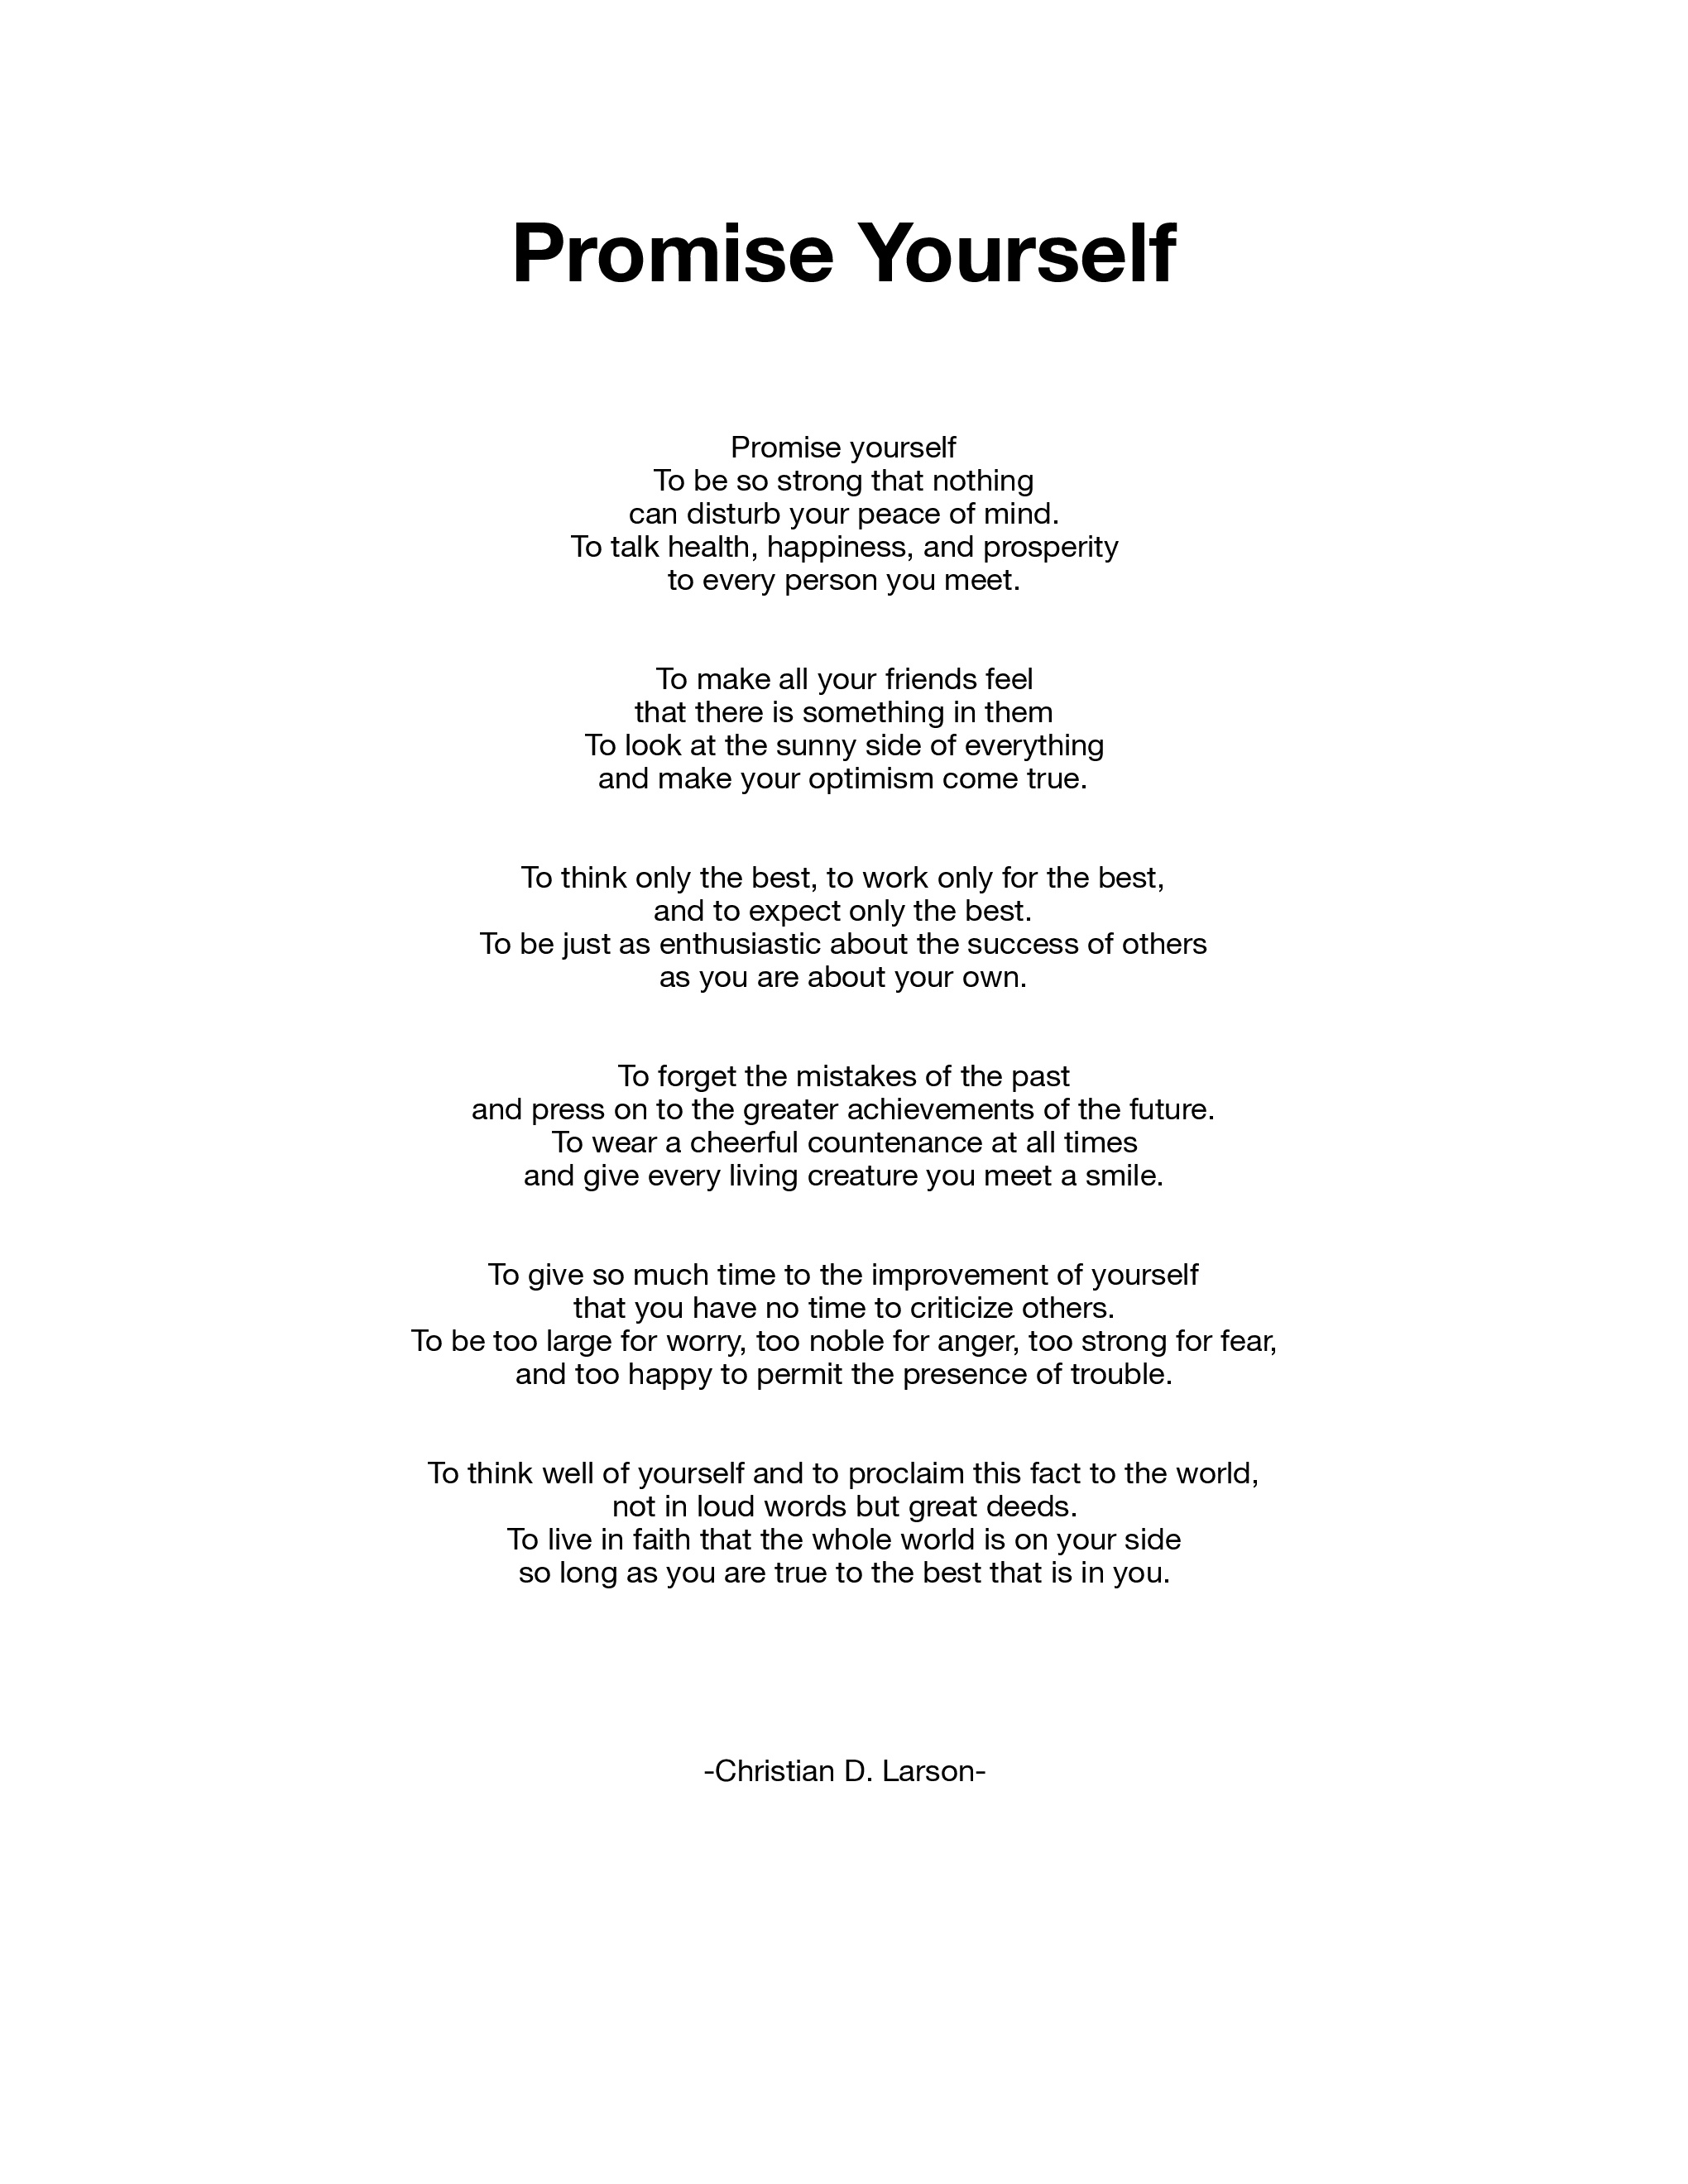 Promise Yourself Poem 2018 JPEG.jpg